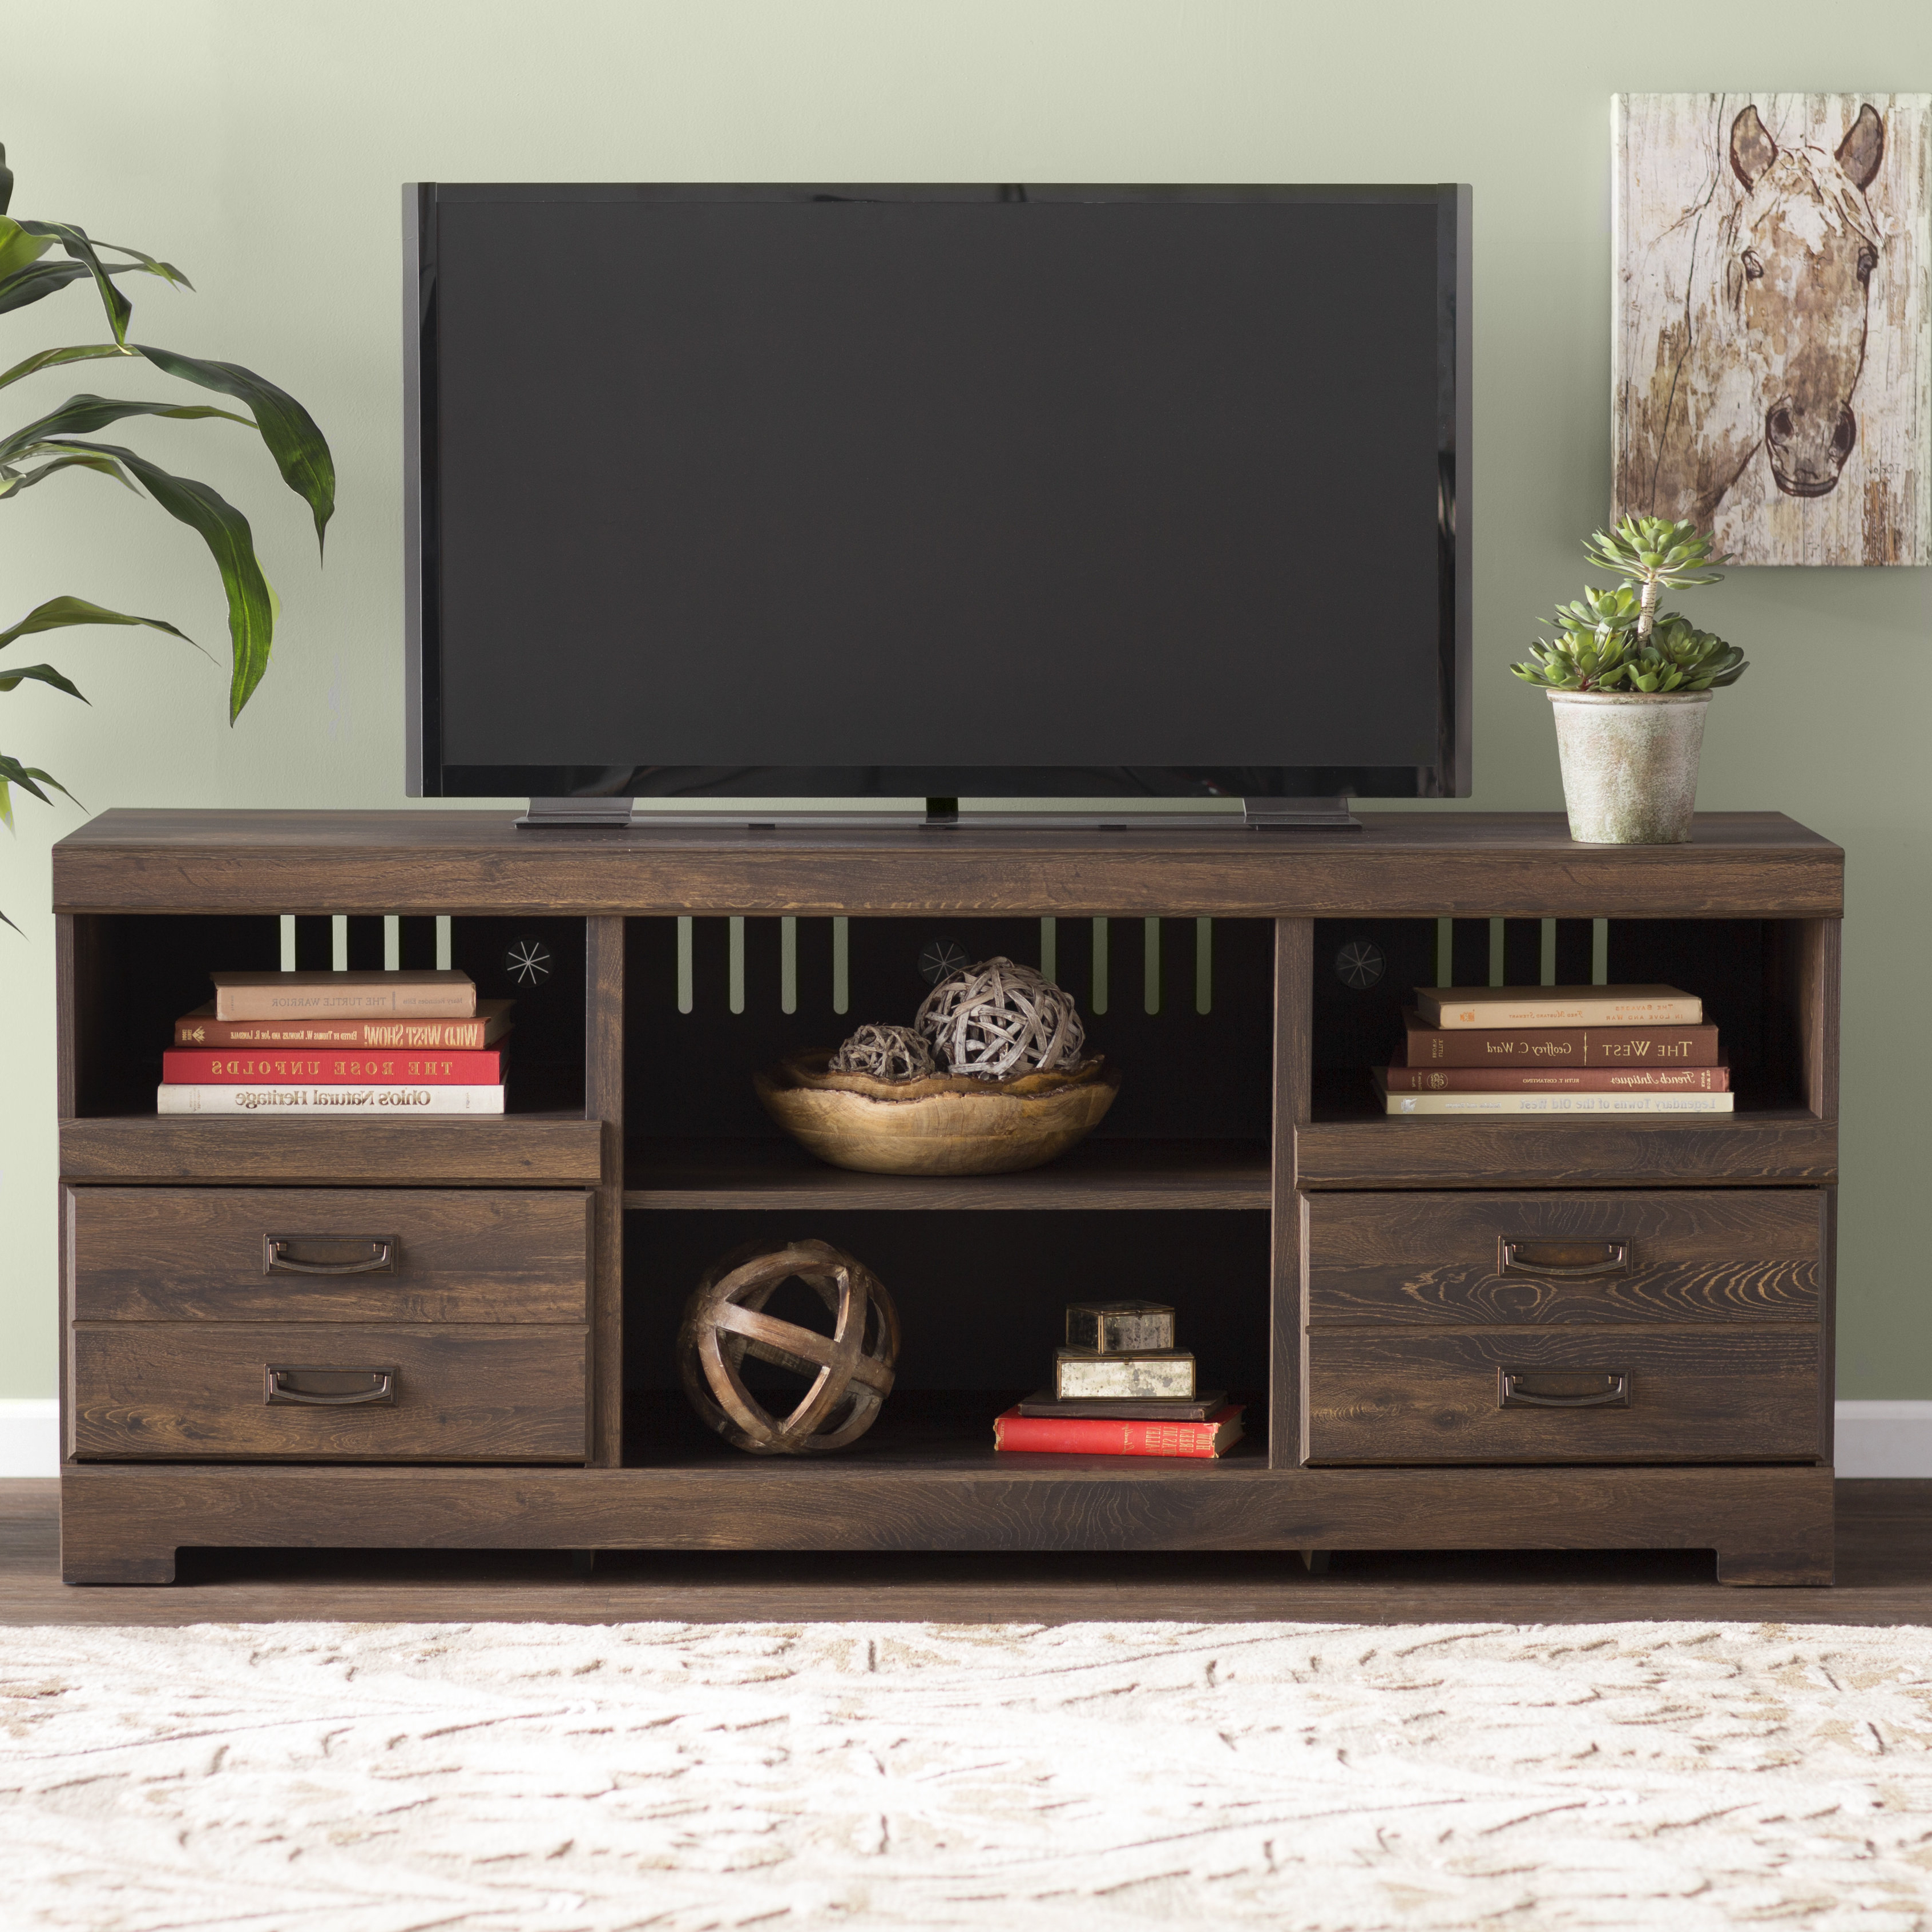 Best And Newest Enclosed Tv Cabinets With Doors In Tv Cabinet With Doors That Enclose Small Enclosed Modern Fully (Gallery 11 of 20)